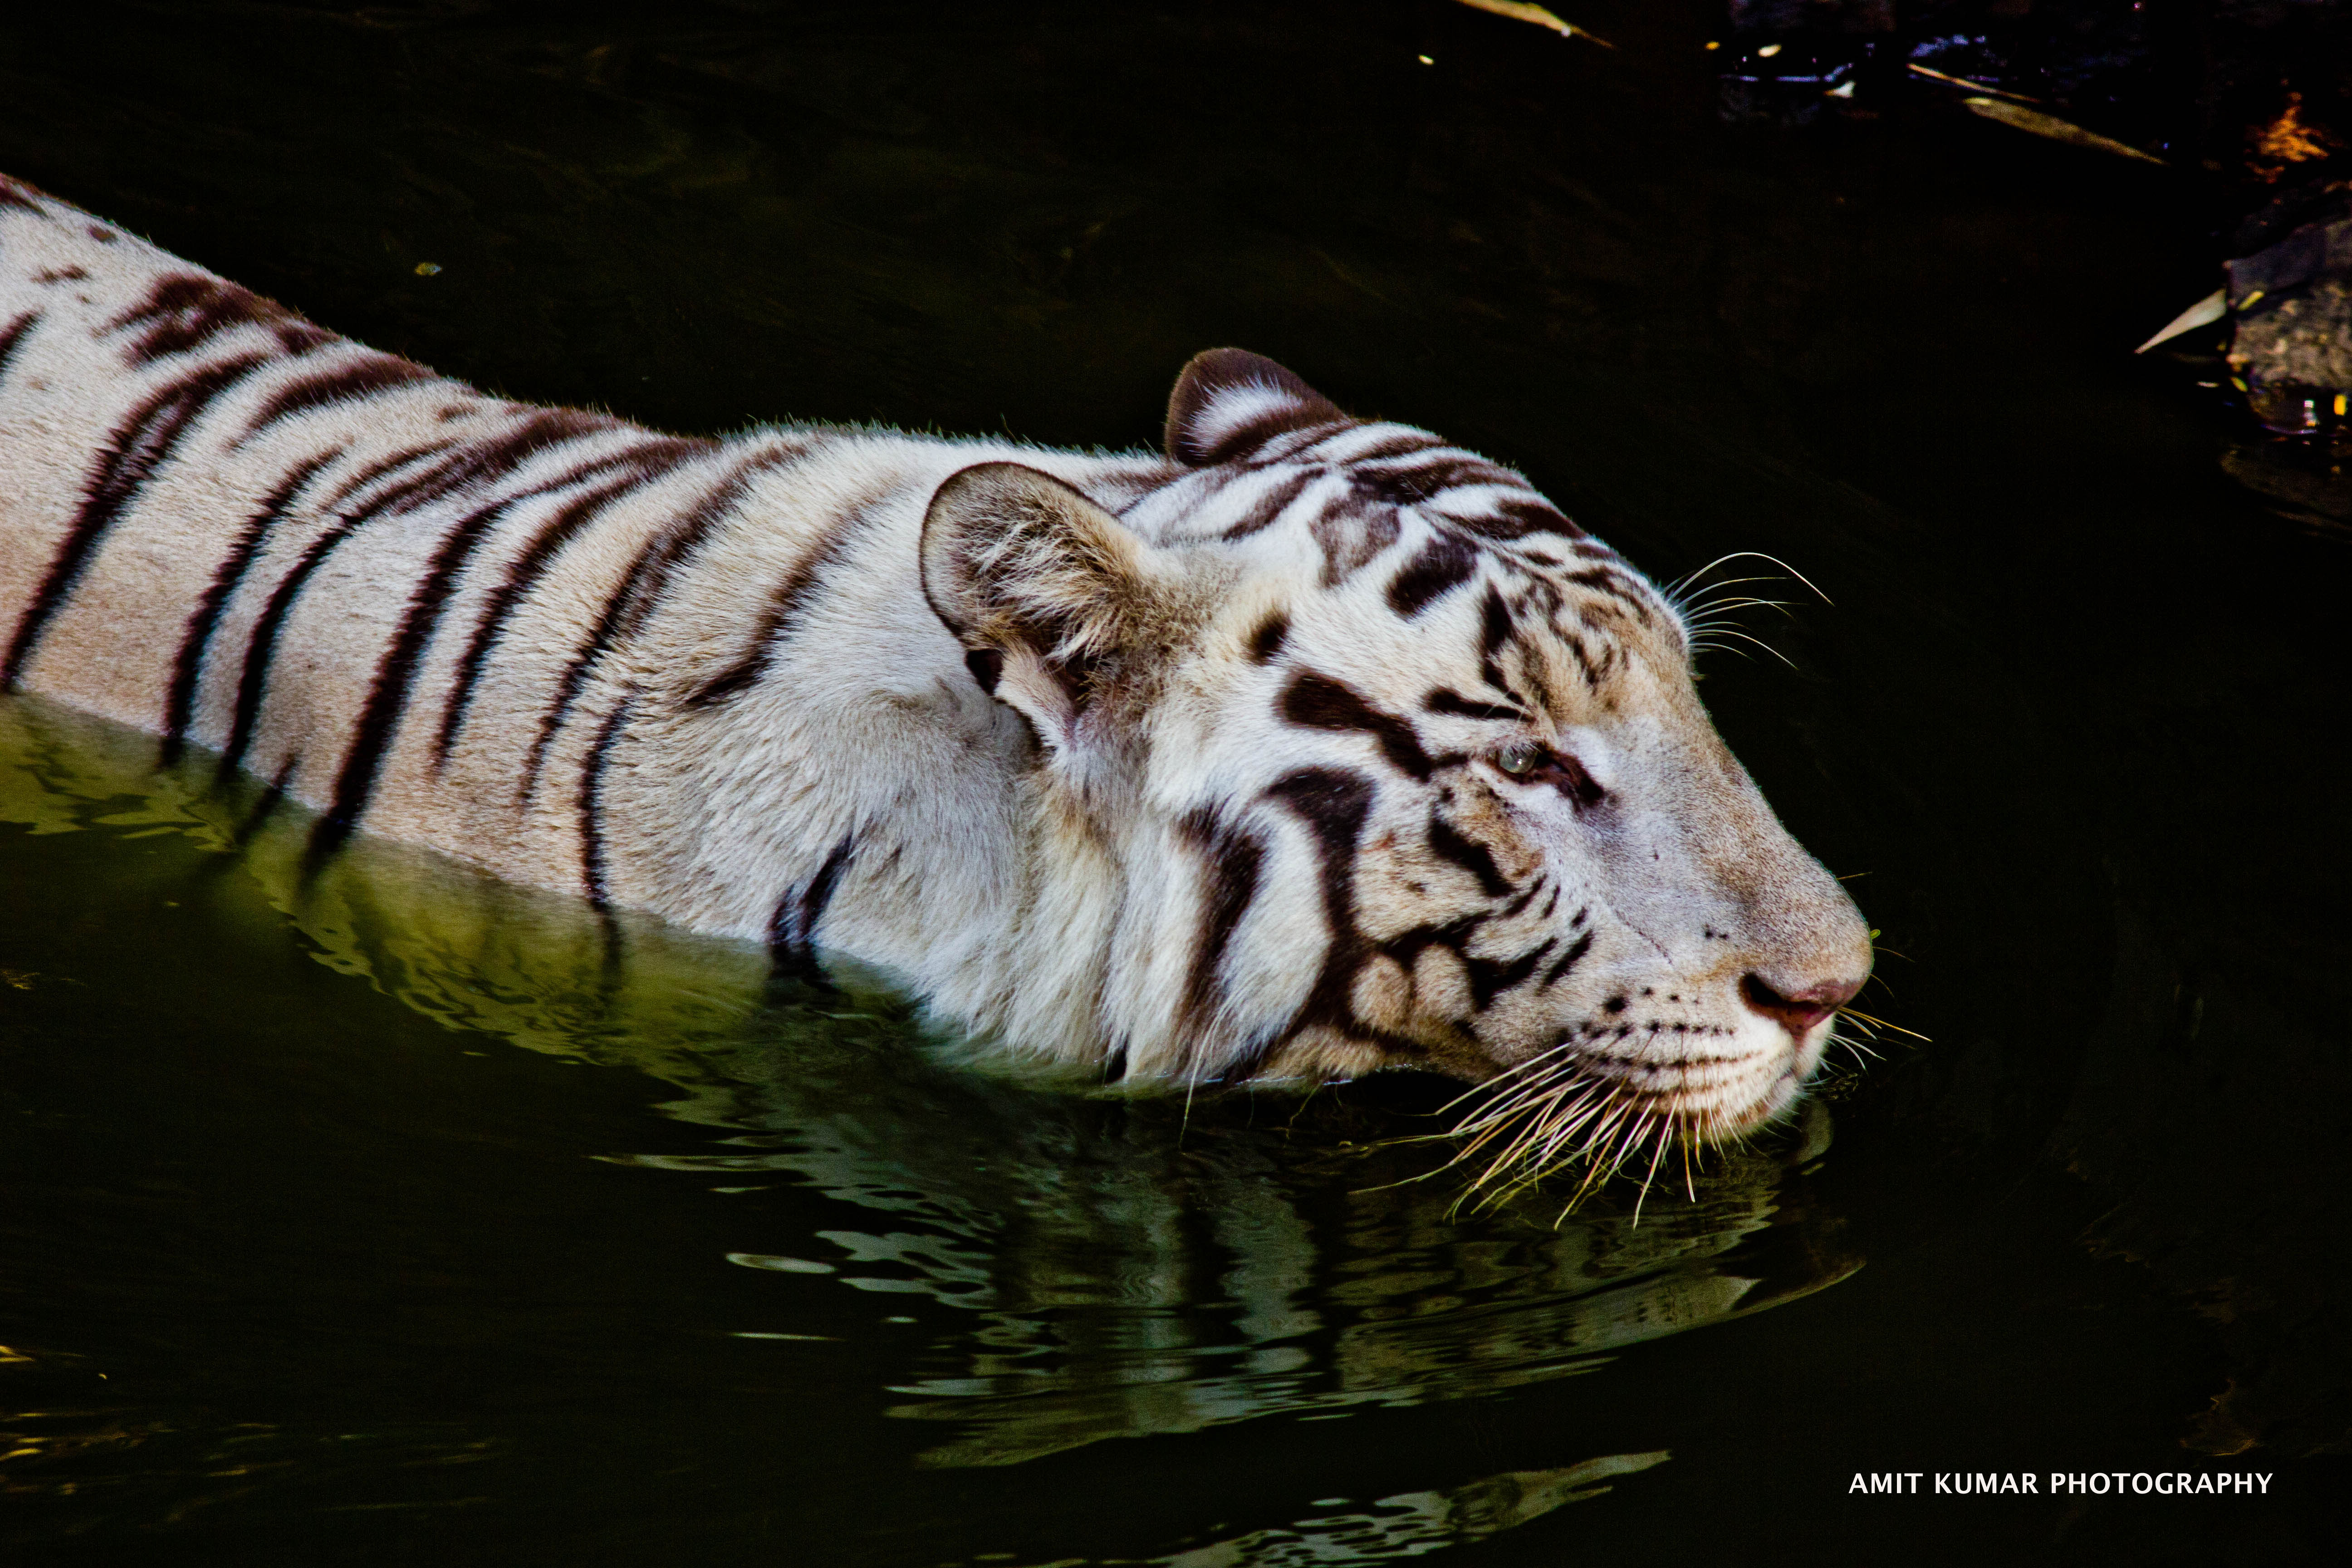 White tigers in water - photo#12